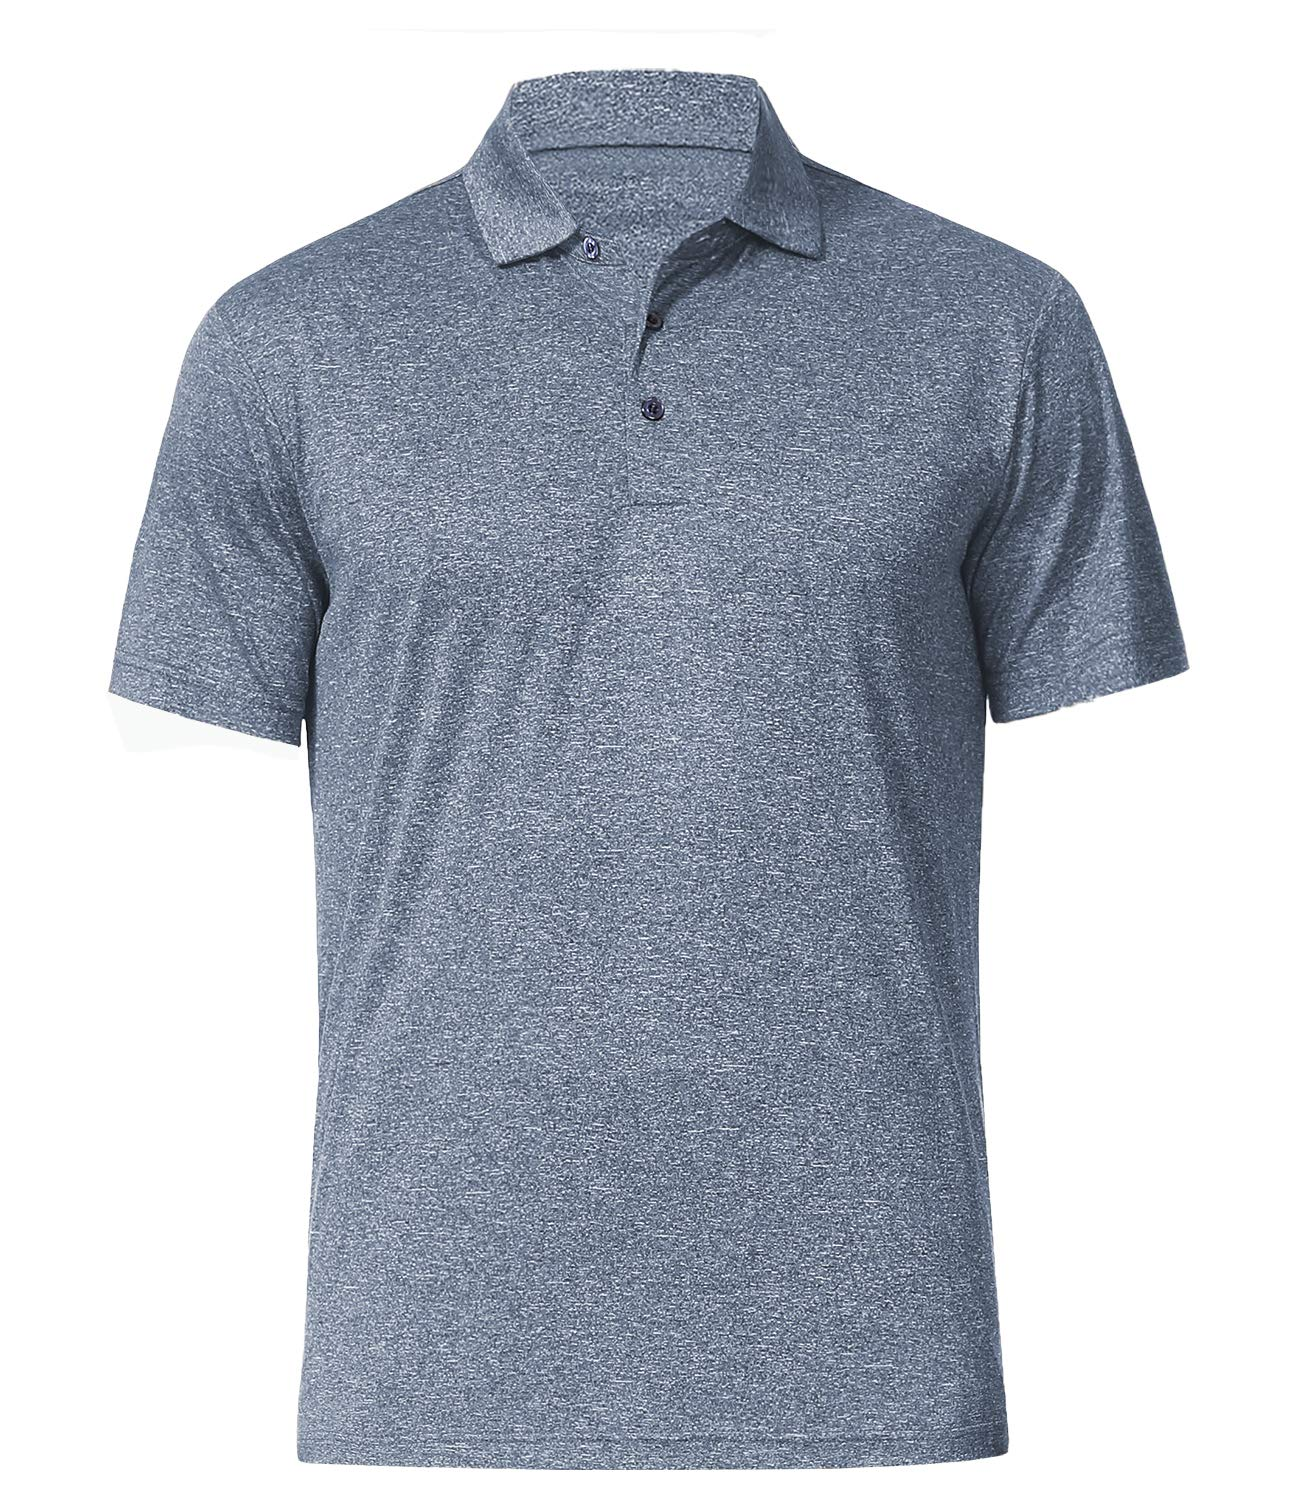 Men's Athletic Golf Polo Shirts, Dry Fit Short Sleeve Workout Shirt (M, Pewter) by COSSNISS